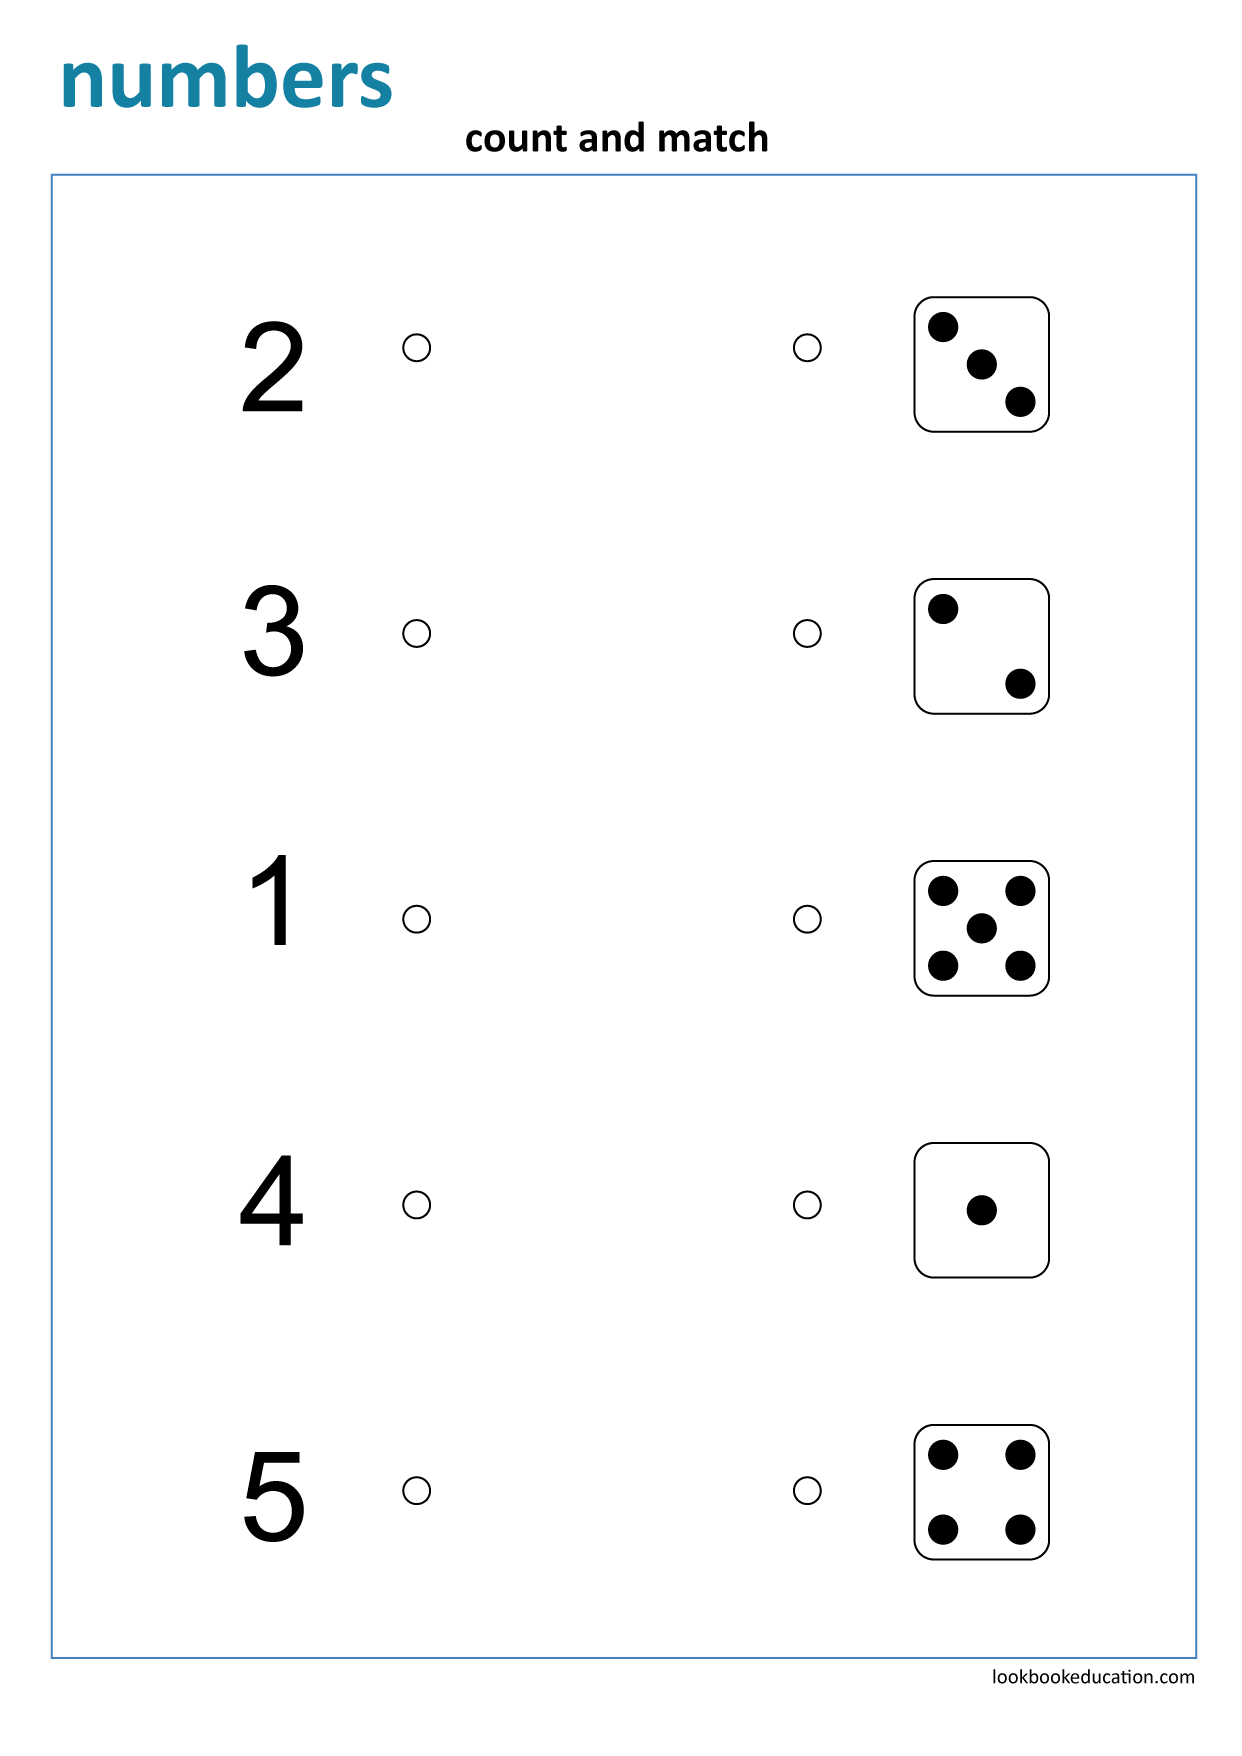 Worksheet Matching Numbers Dice